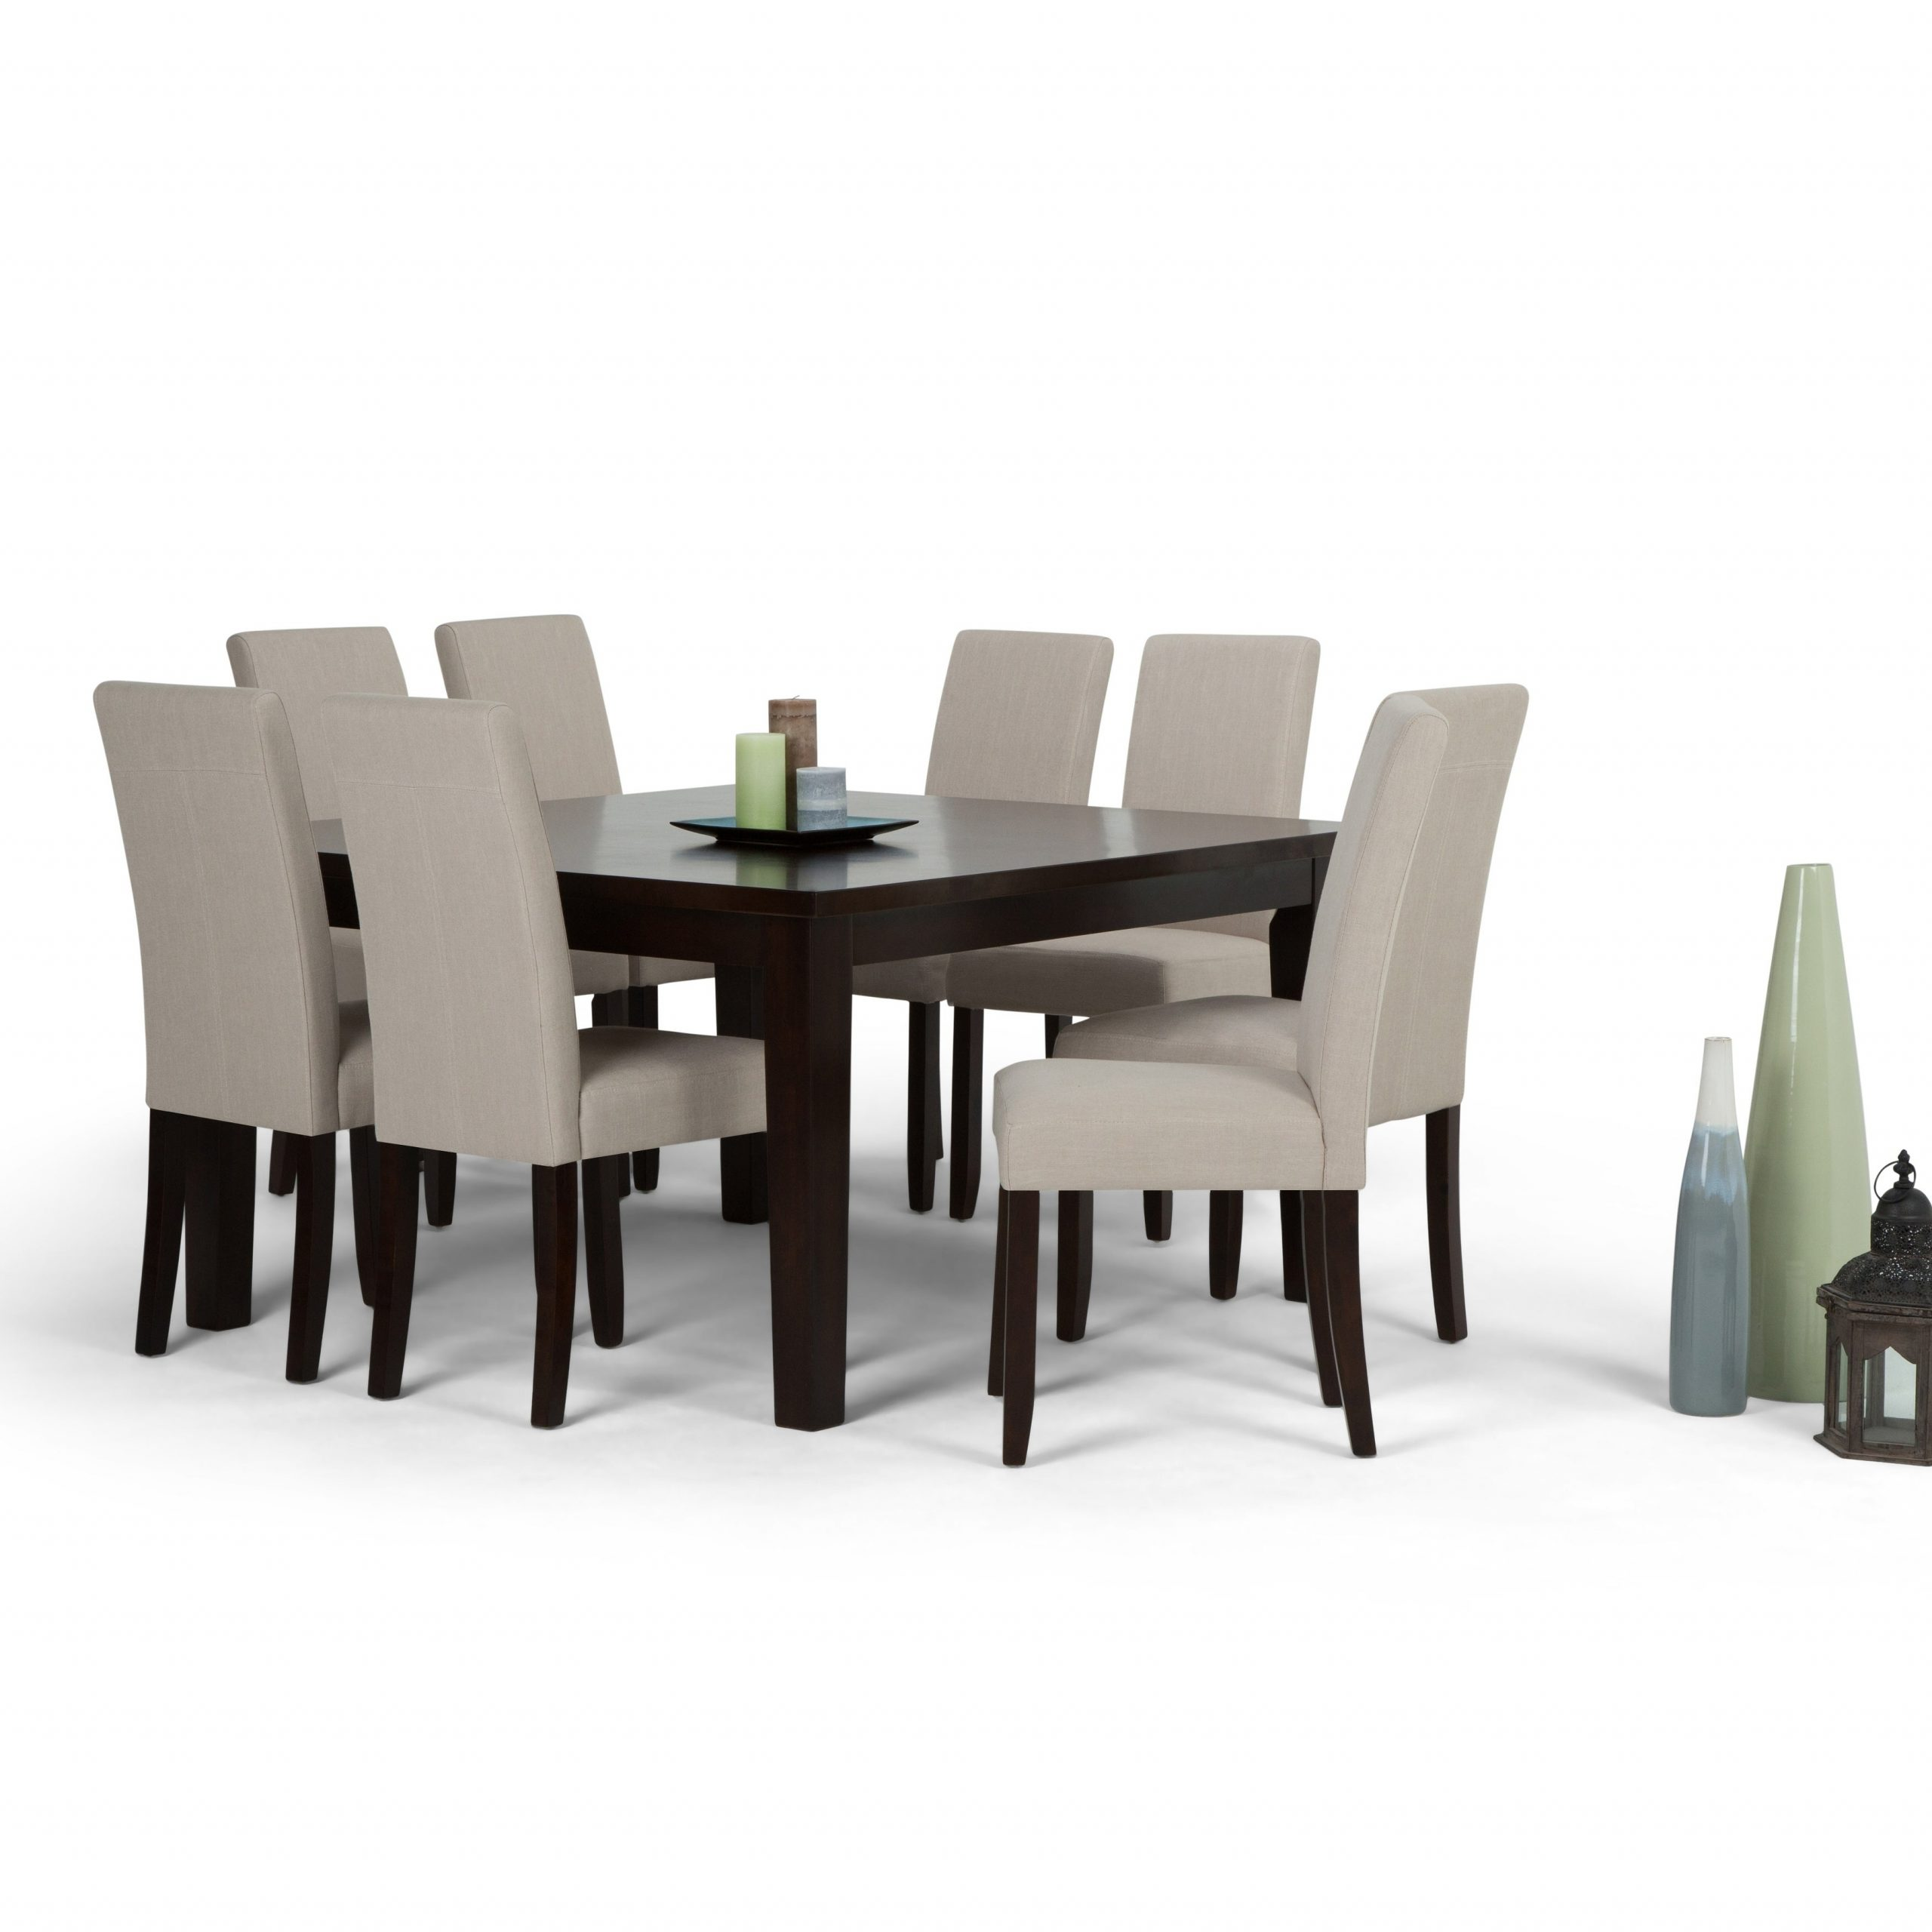 Wyndenhall Normandy Contemporary 9 Pc Dining Set With 8 Upholstered Parson Chairs And 54 Inch Wide Table For Most Popular Normandy Extending Dining Tables (View 21 of 25)